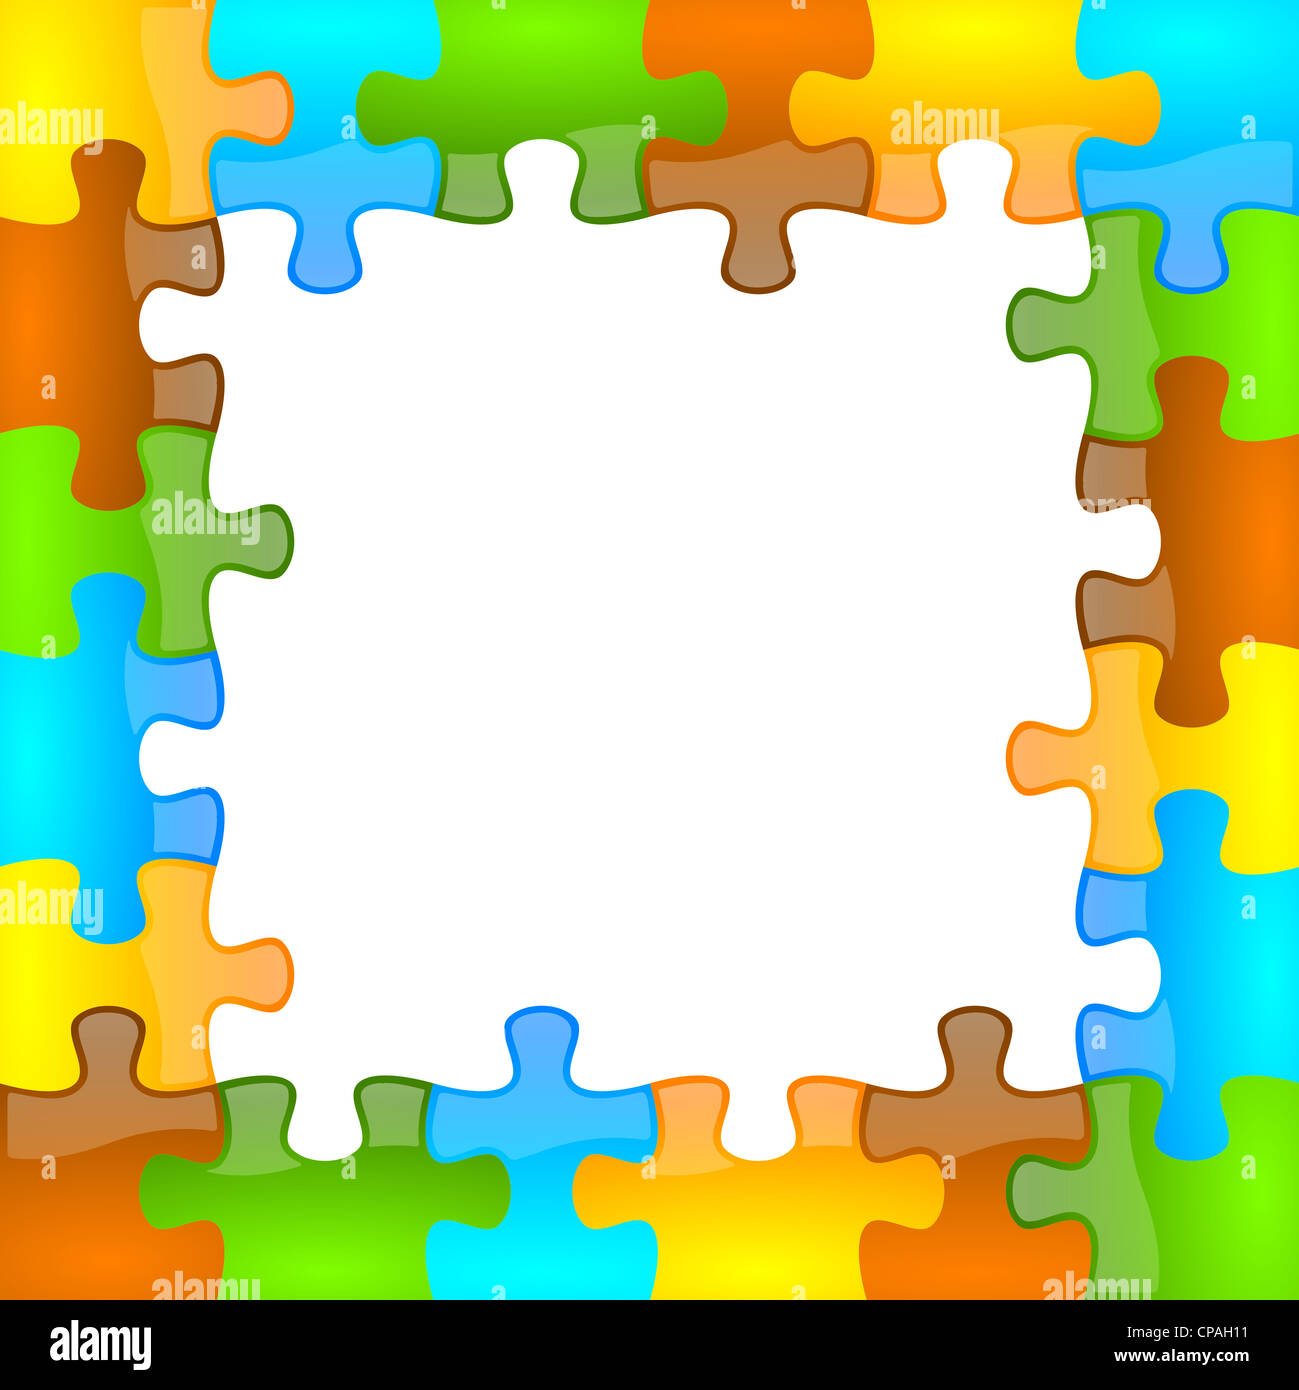 colored and jazzy puzzle frame background 6 x 6 format stock image